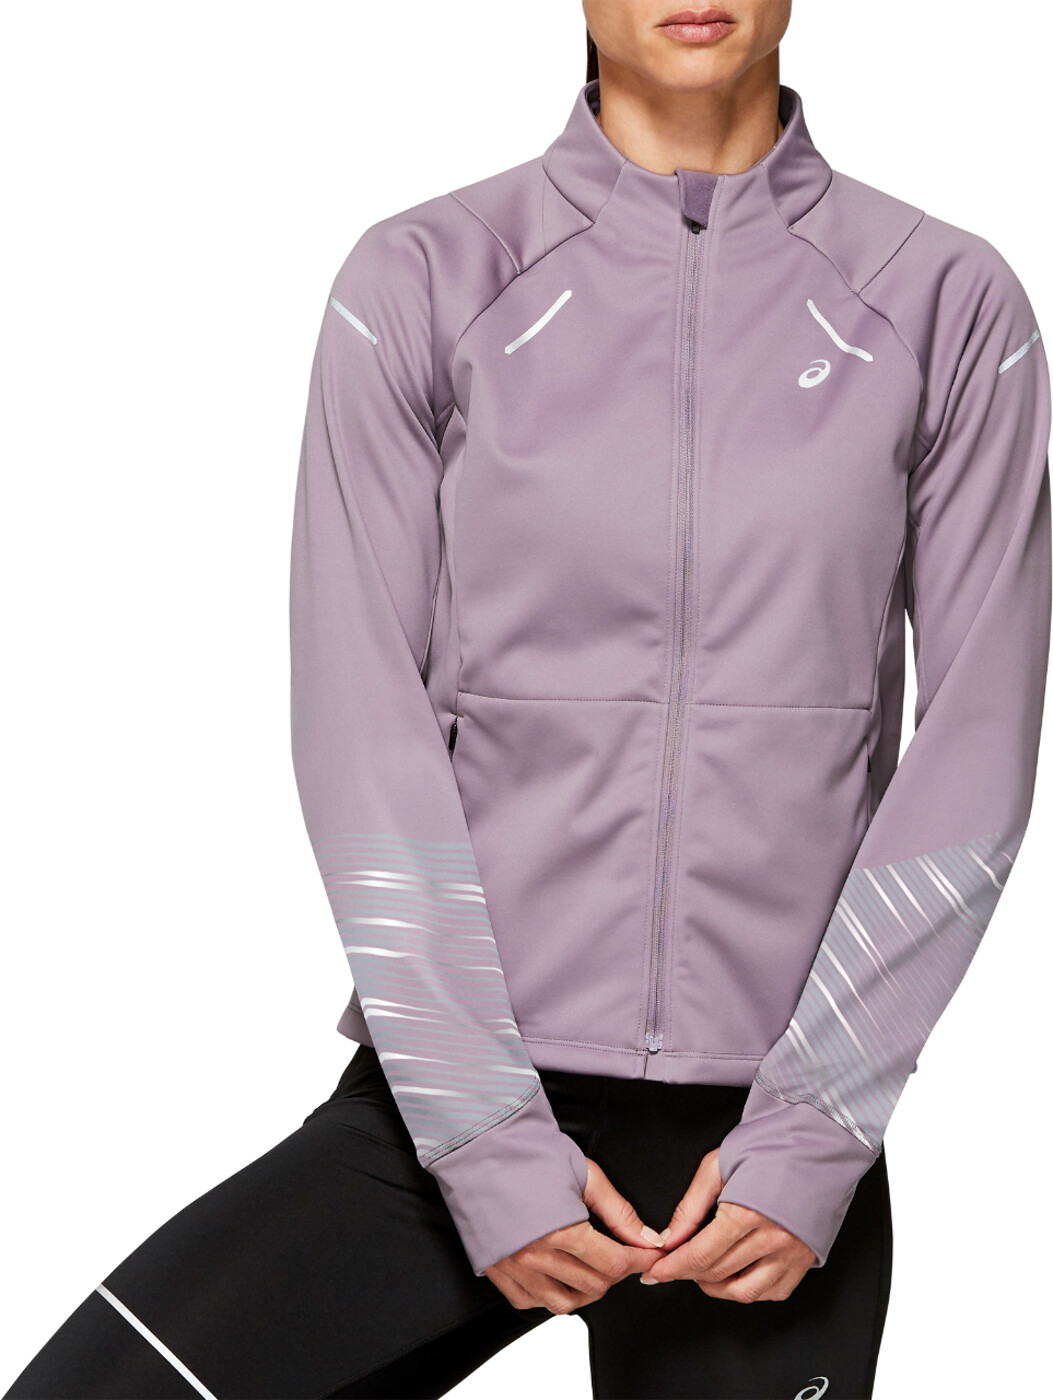 ASICS LITE-SHOW 2 WINTER JACKET - Damen